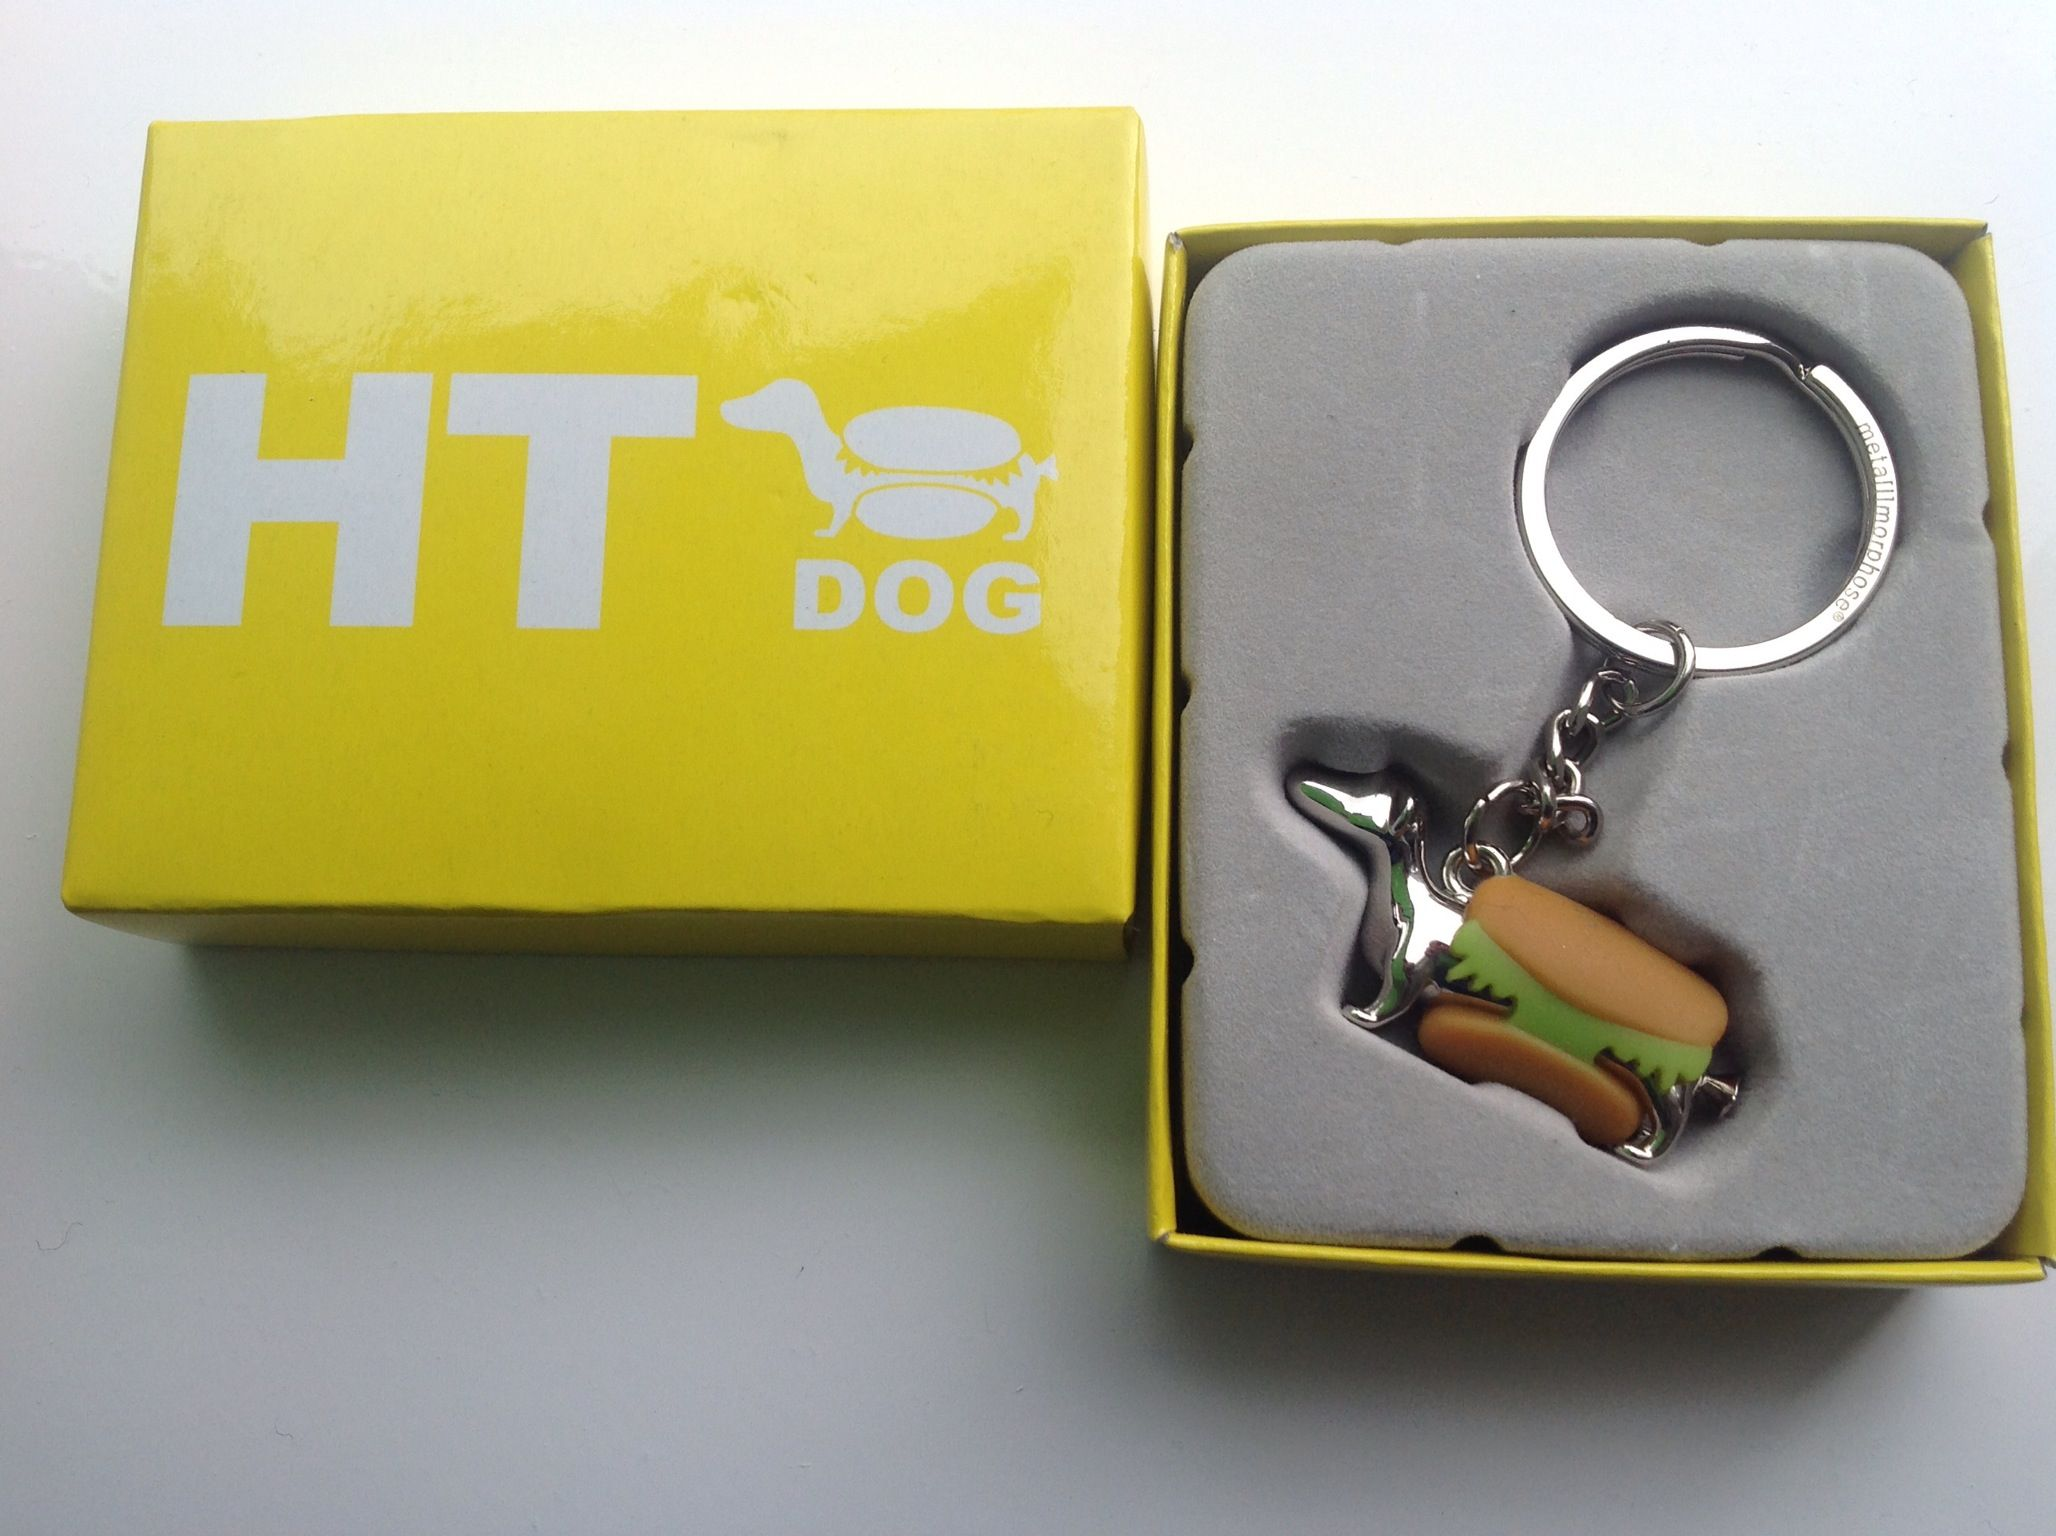 Hot dog key chain